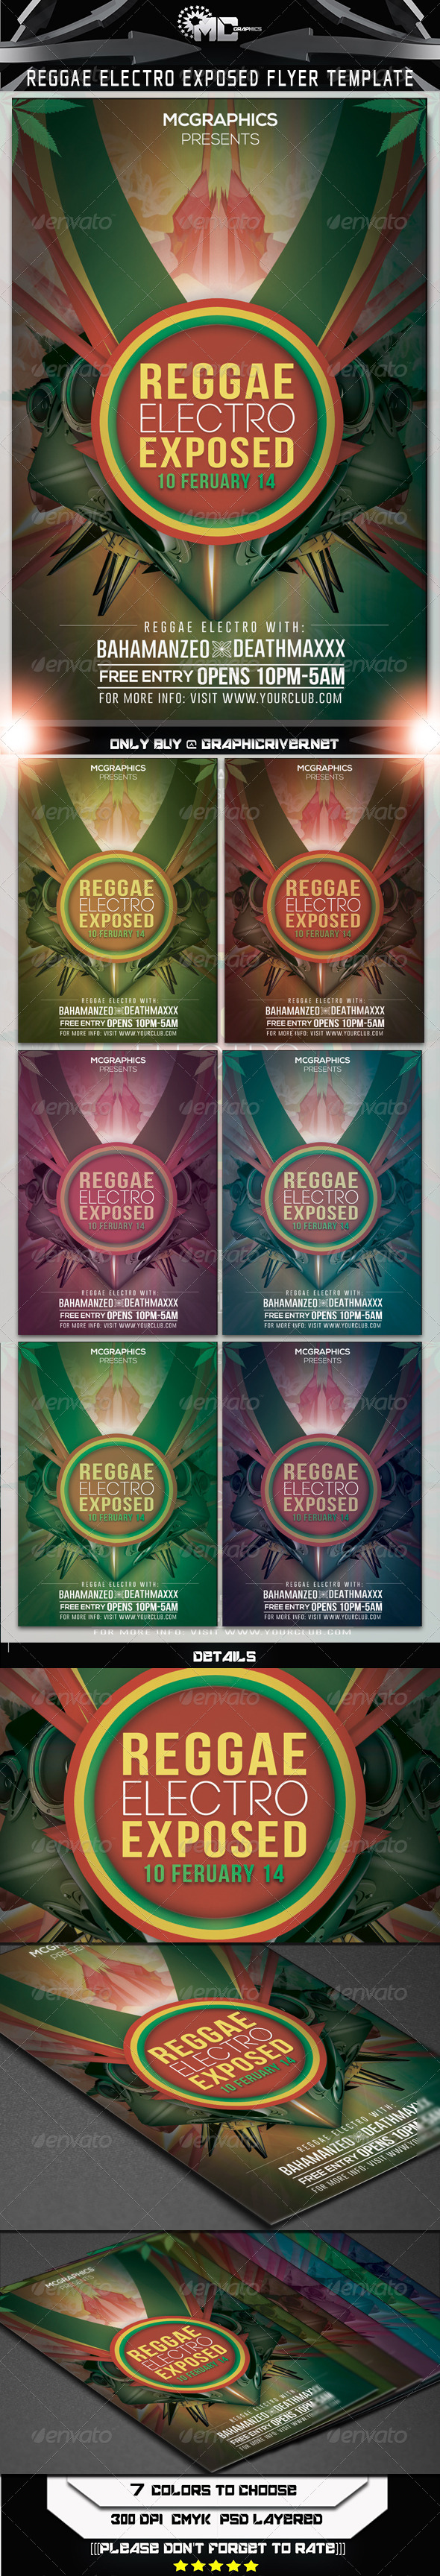 Reggae Electro Exposed Flyer Template - Clubs & Parties Events